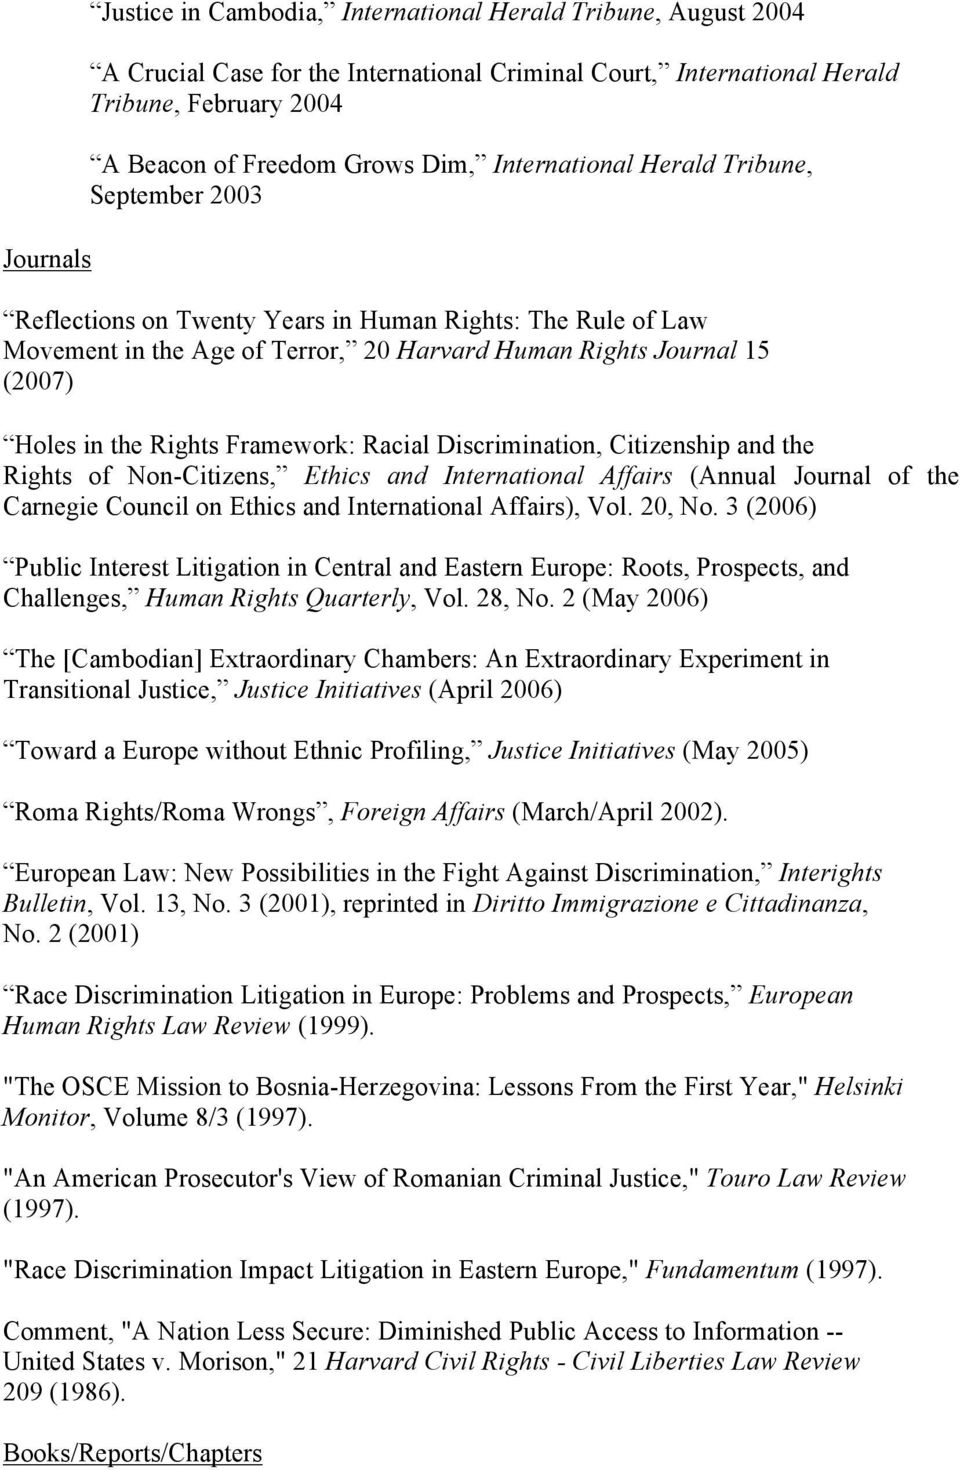 Framework: Racial Discrimination, Citizenship and the Rights of Non-Citizens, Ethics and International Affairs (Annual Journal of the Carnegie Council on Ethics and International Affairs), Vol.